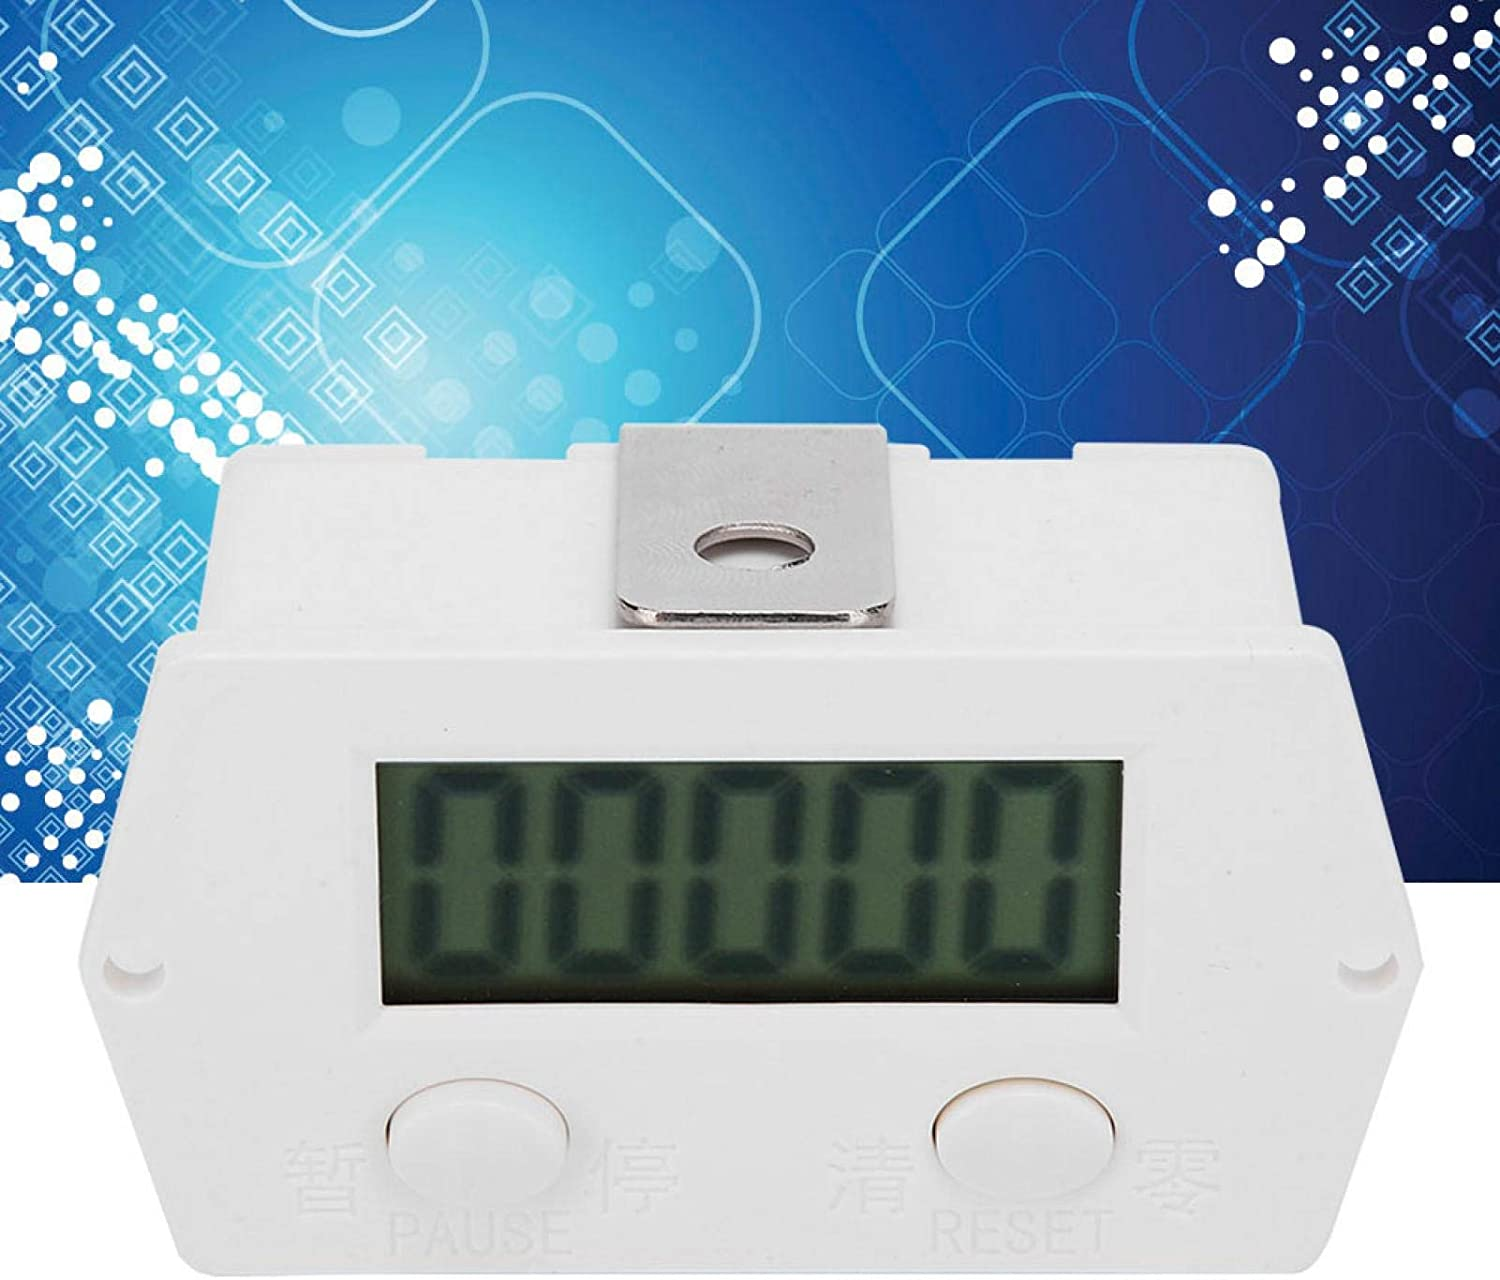 Low Power Consumption Metal Magnetron XJ‑5J Magnetic Induction Digital Counter for Machine Tool Automated Industry, Machine Tool Digital Counter